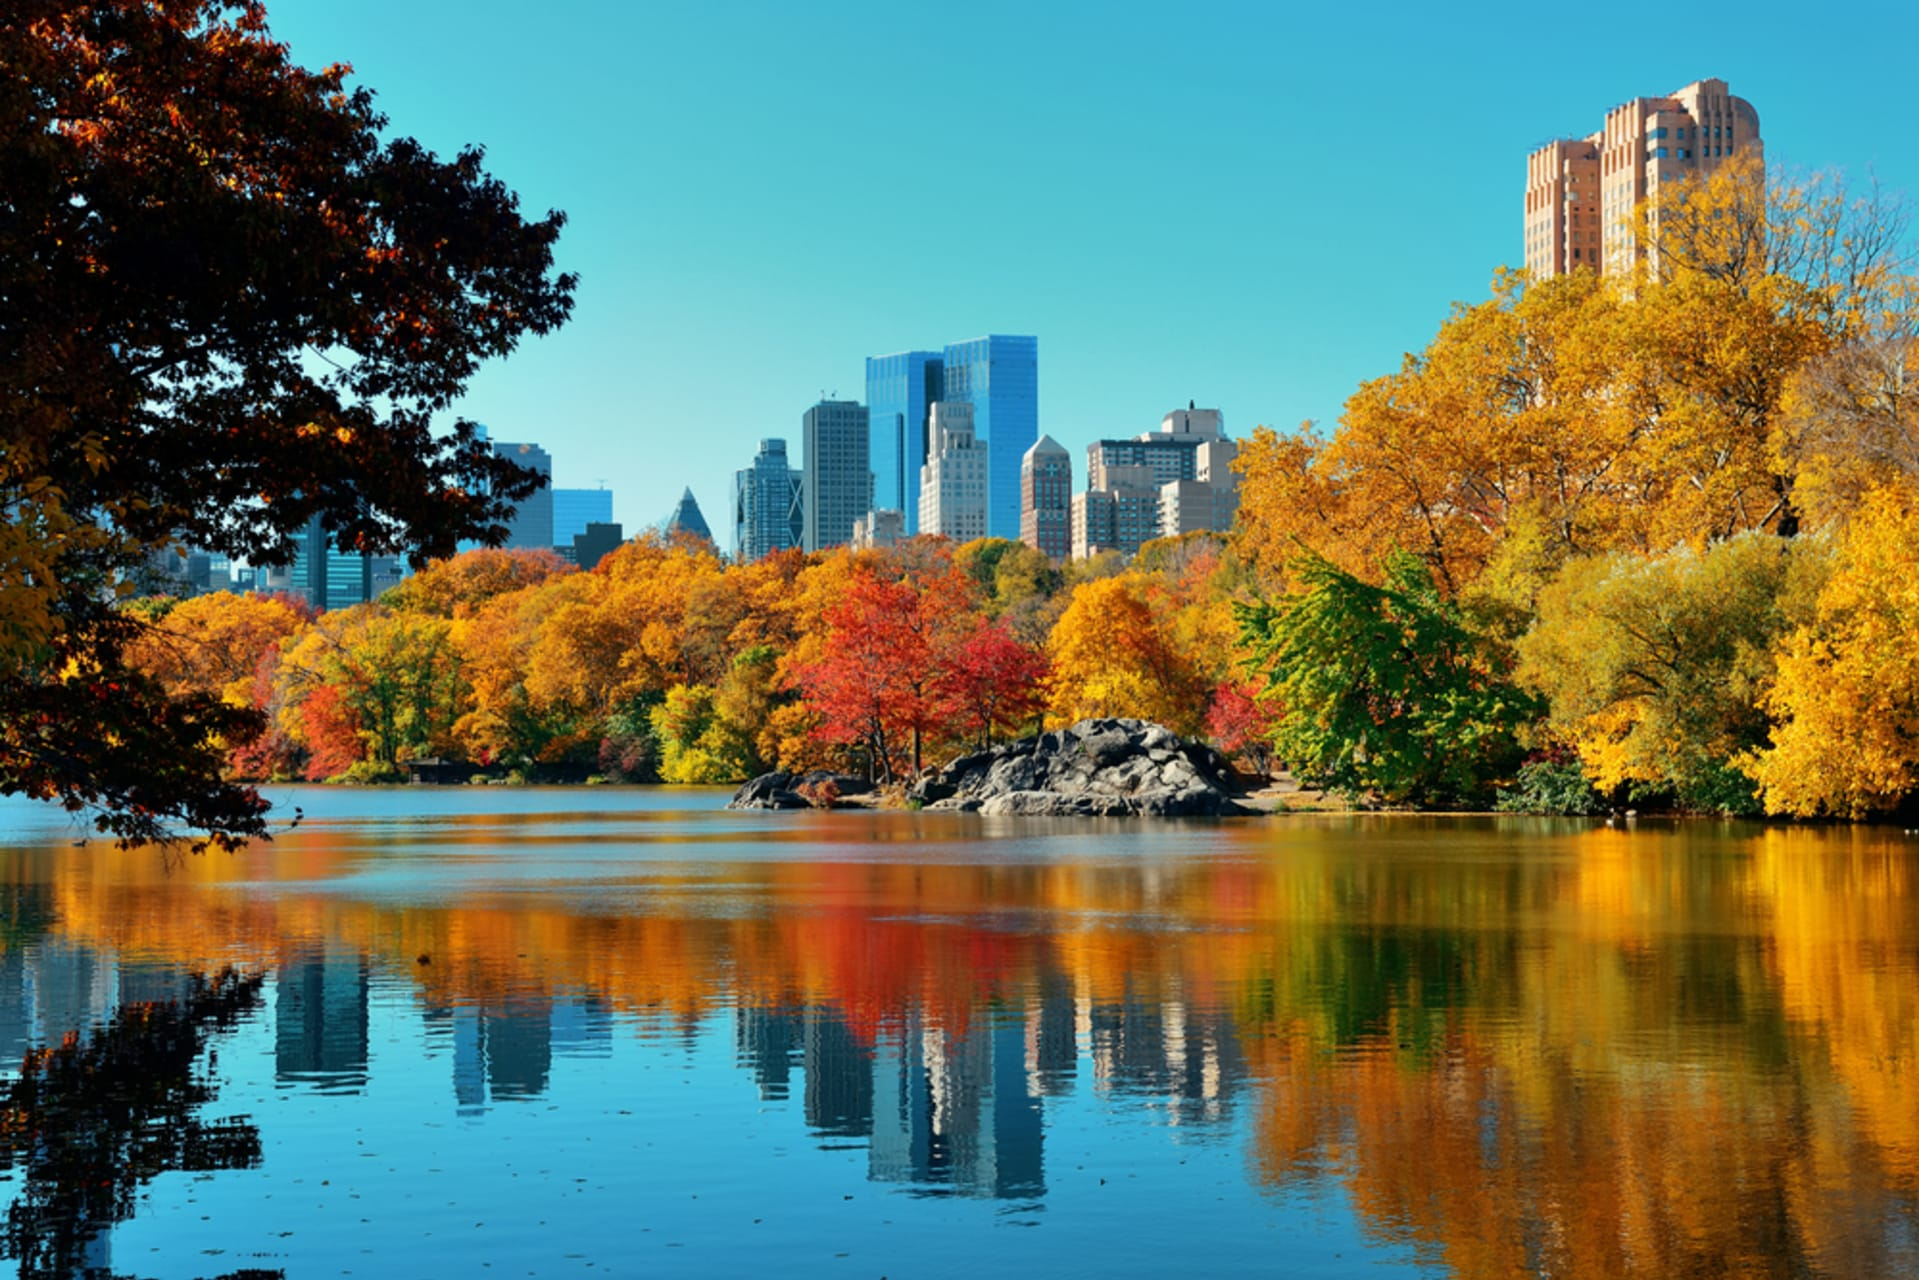 New York - Central Park - All About the Arts